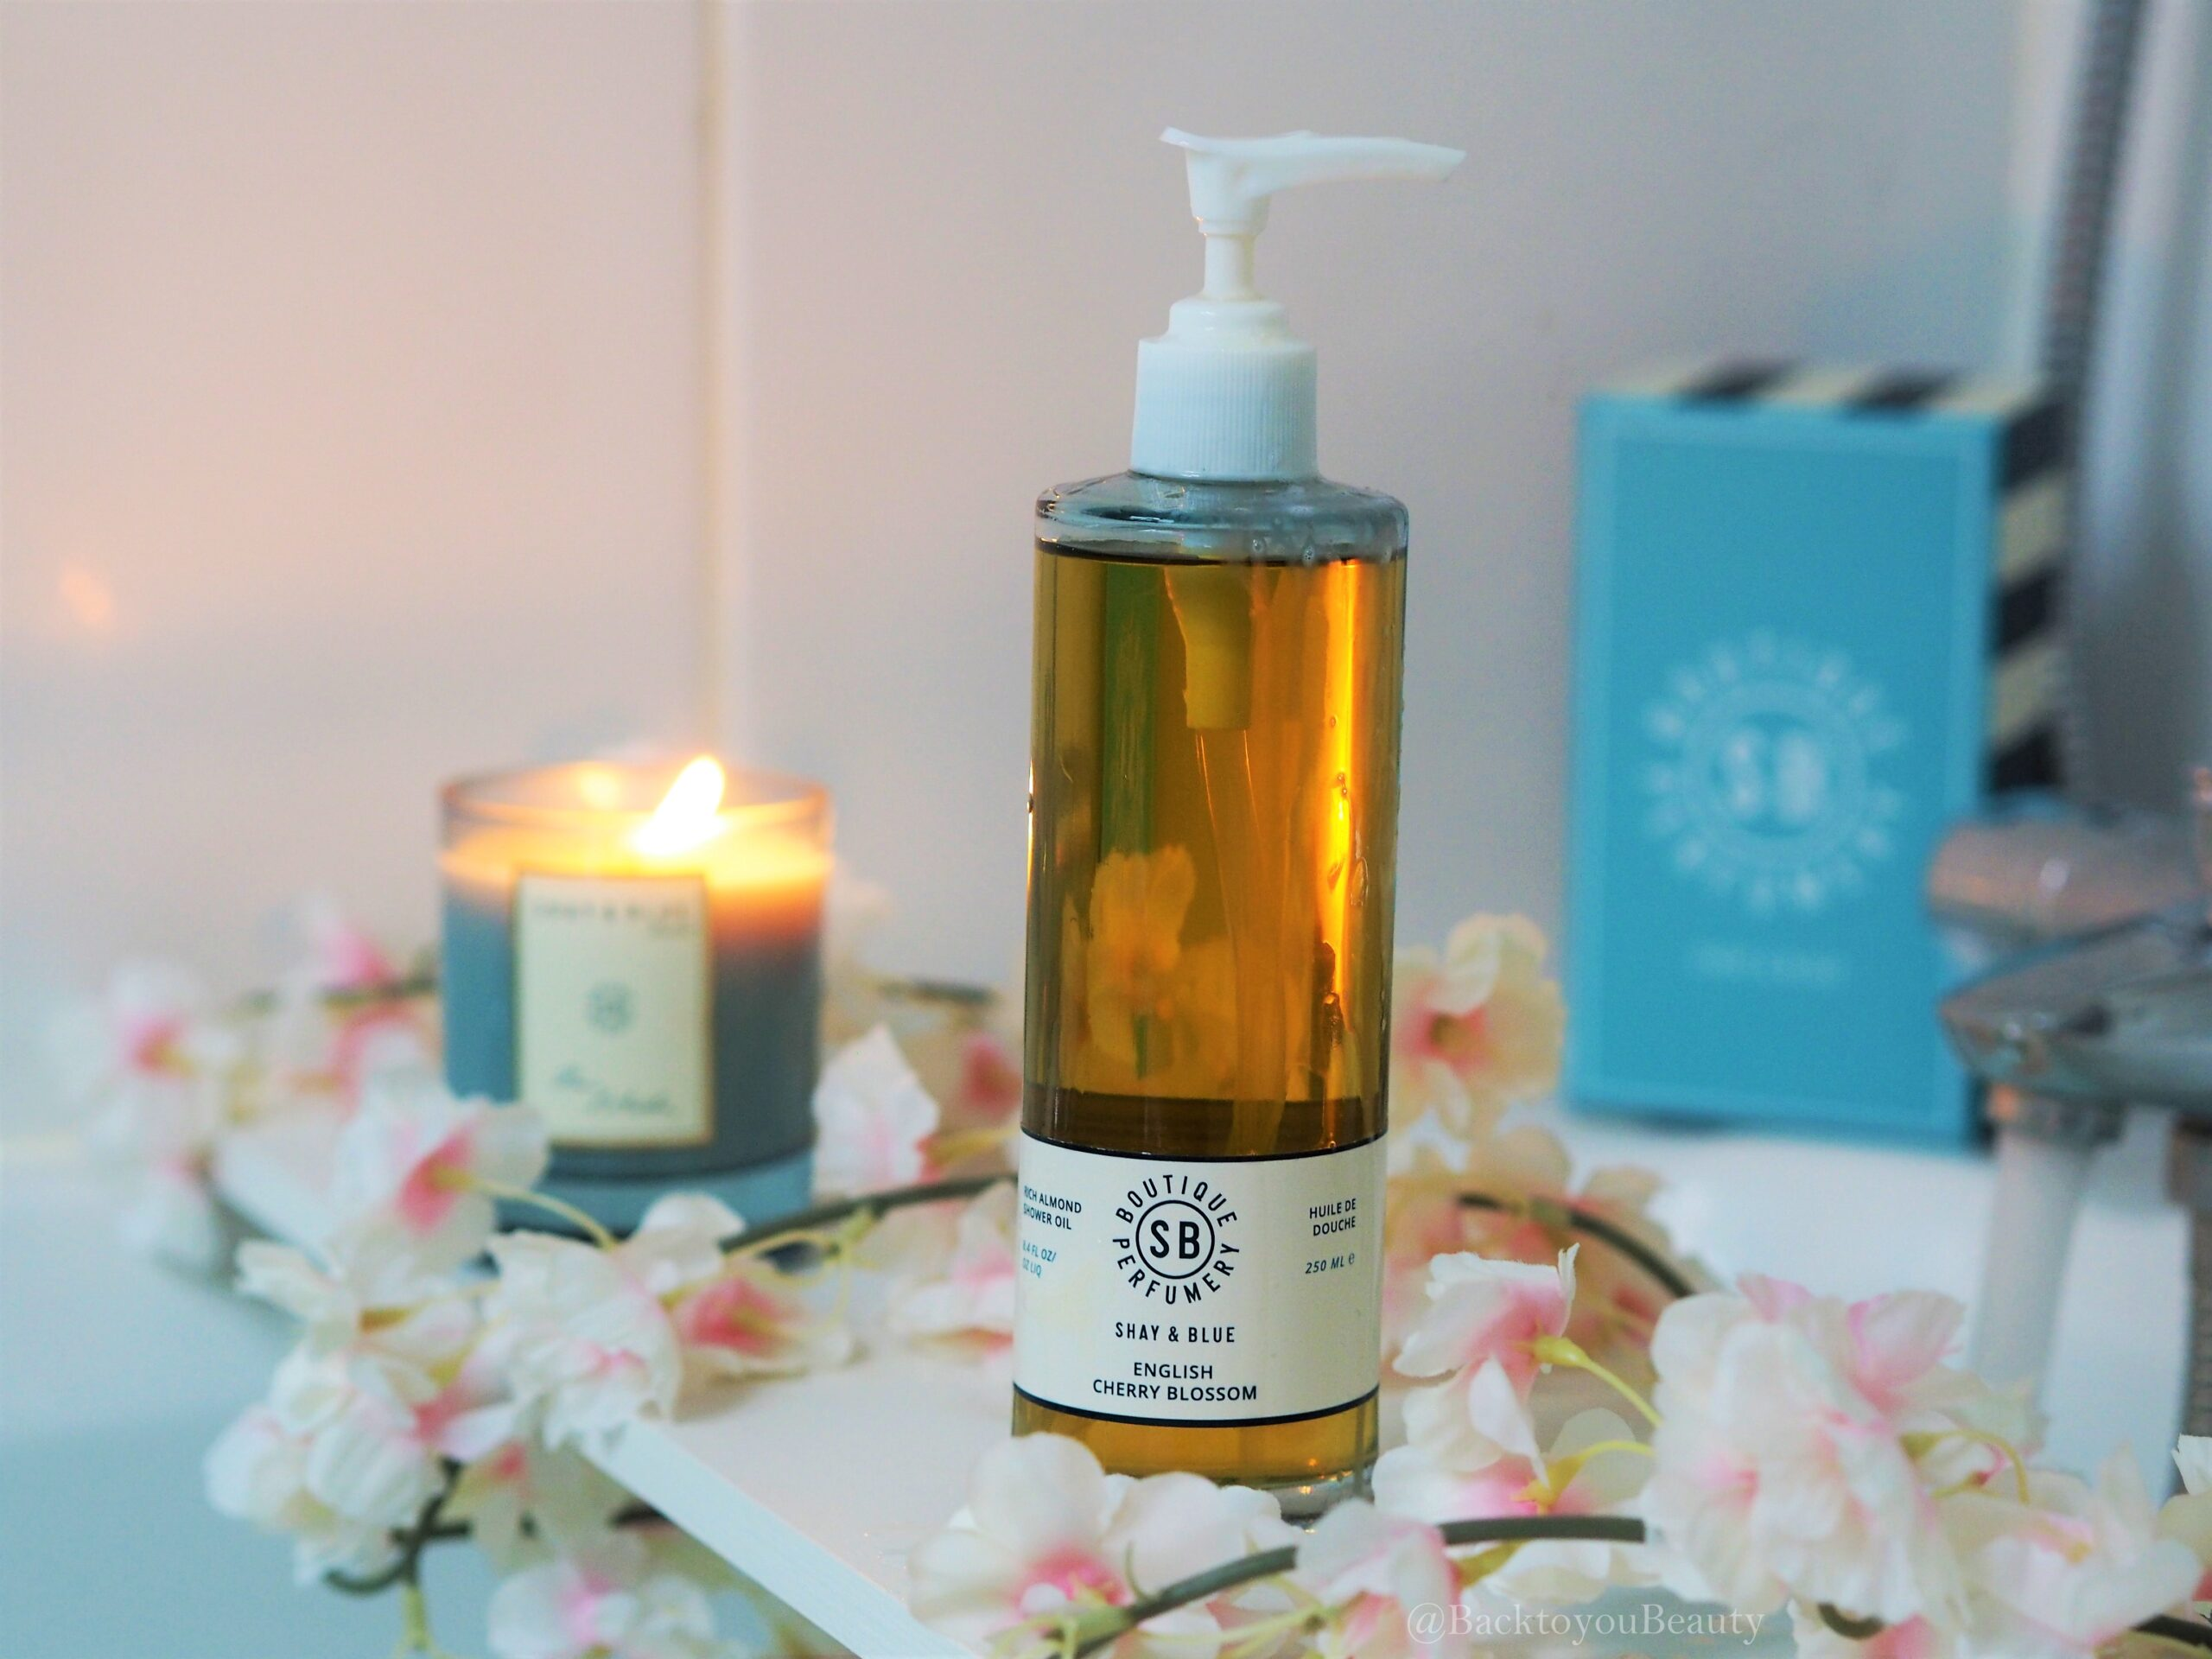 shay & blue cherry blossom shower oil